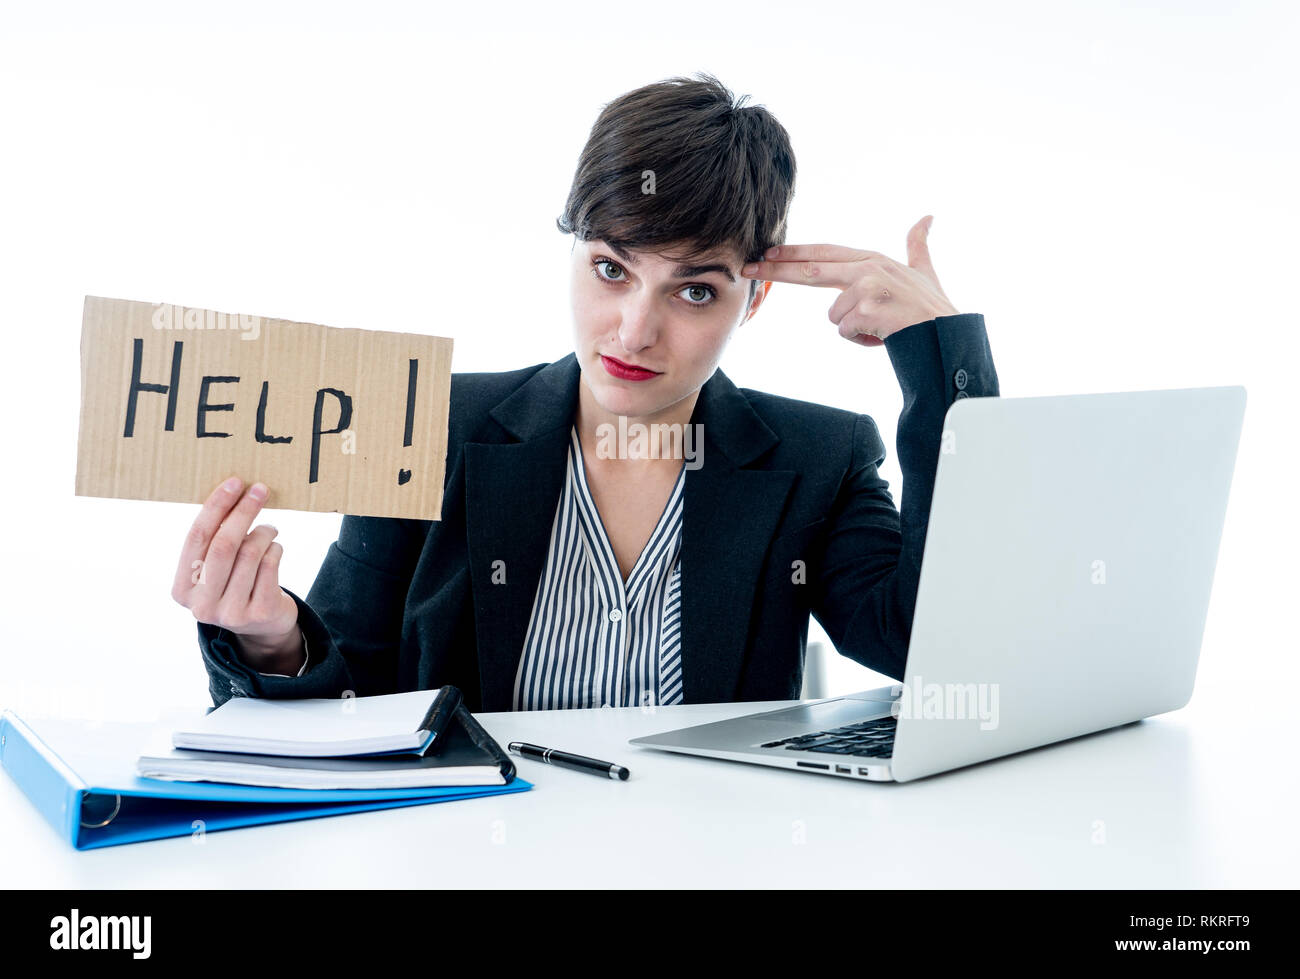 Tired and frustrated young attractive business woman working on computer holding desperate a help sign at office isolated on white background. Coping  - Stock Image